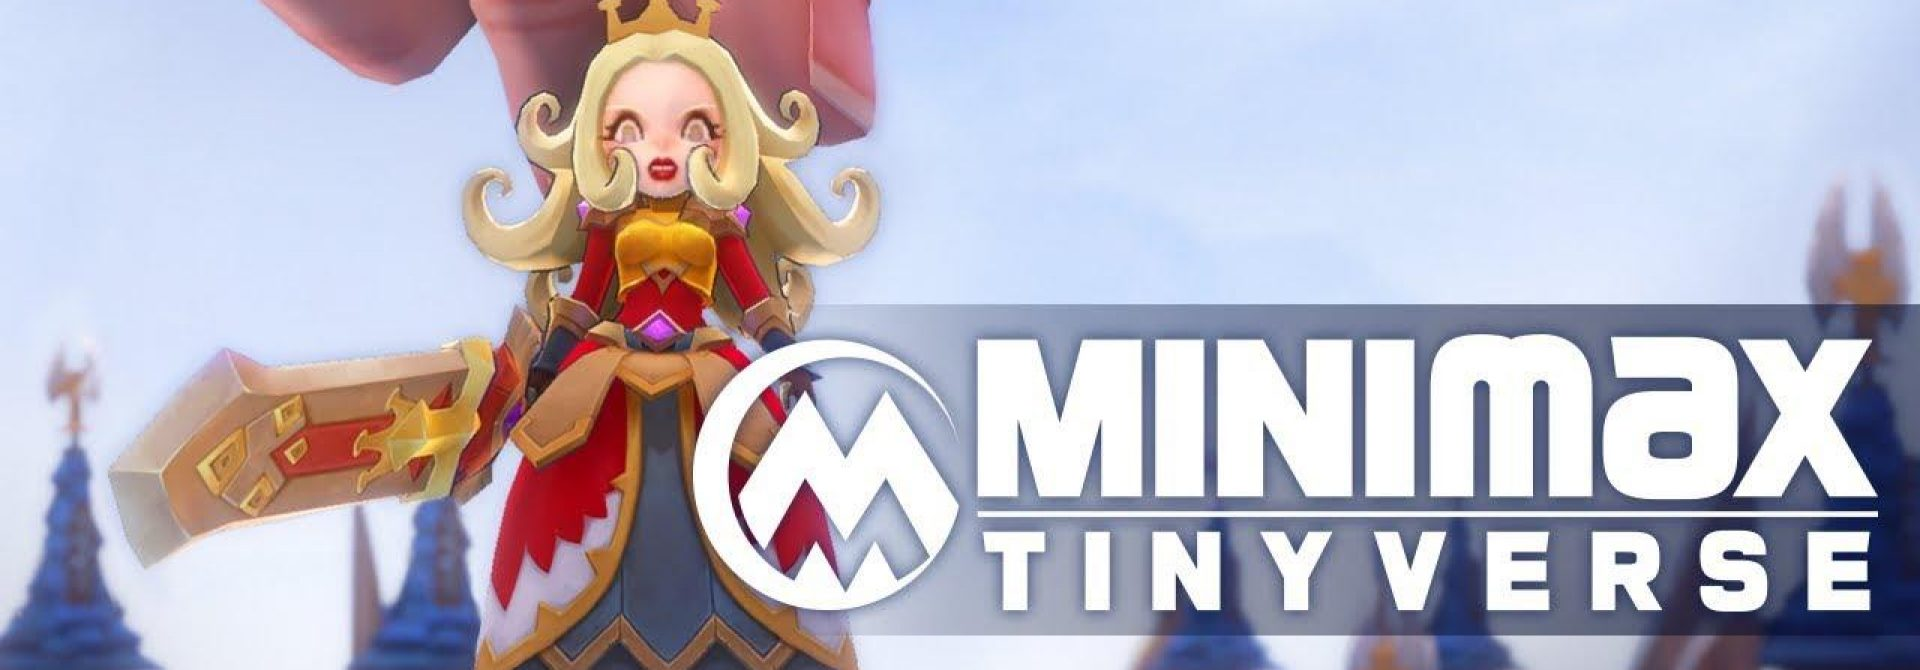 MINImax Tinyverse Coming To Steam December 26